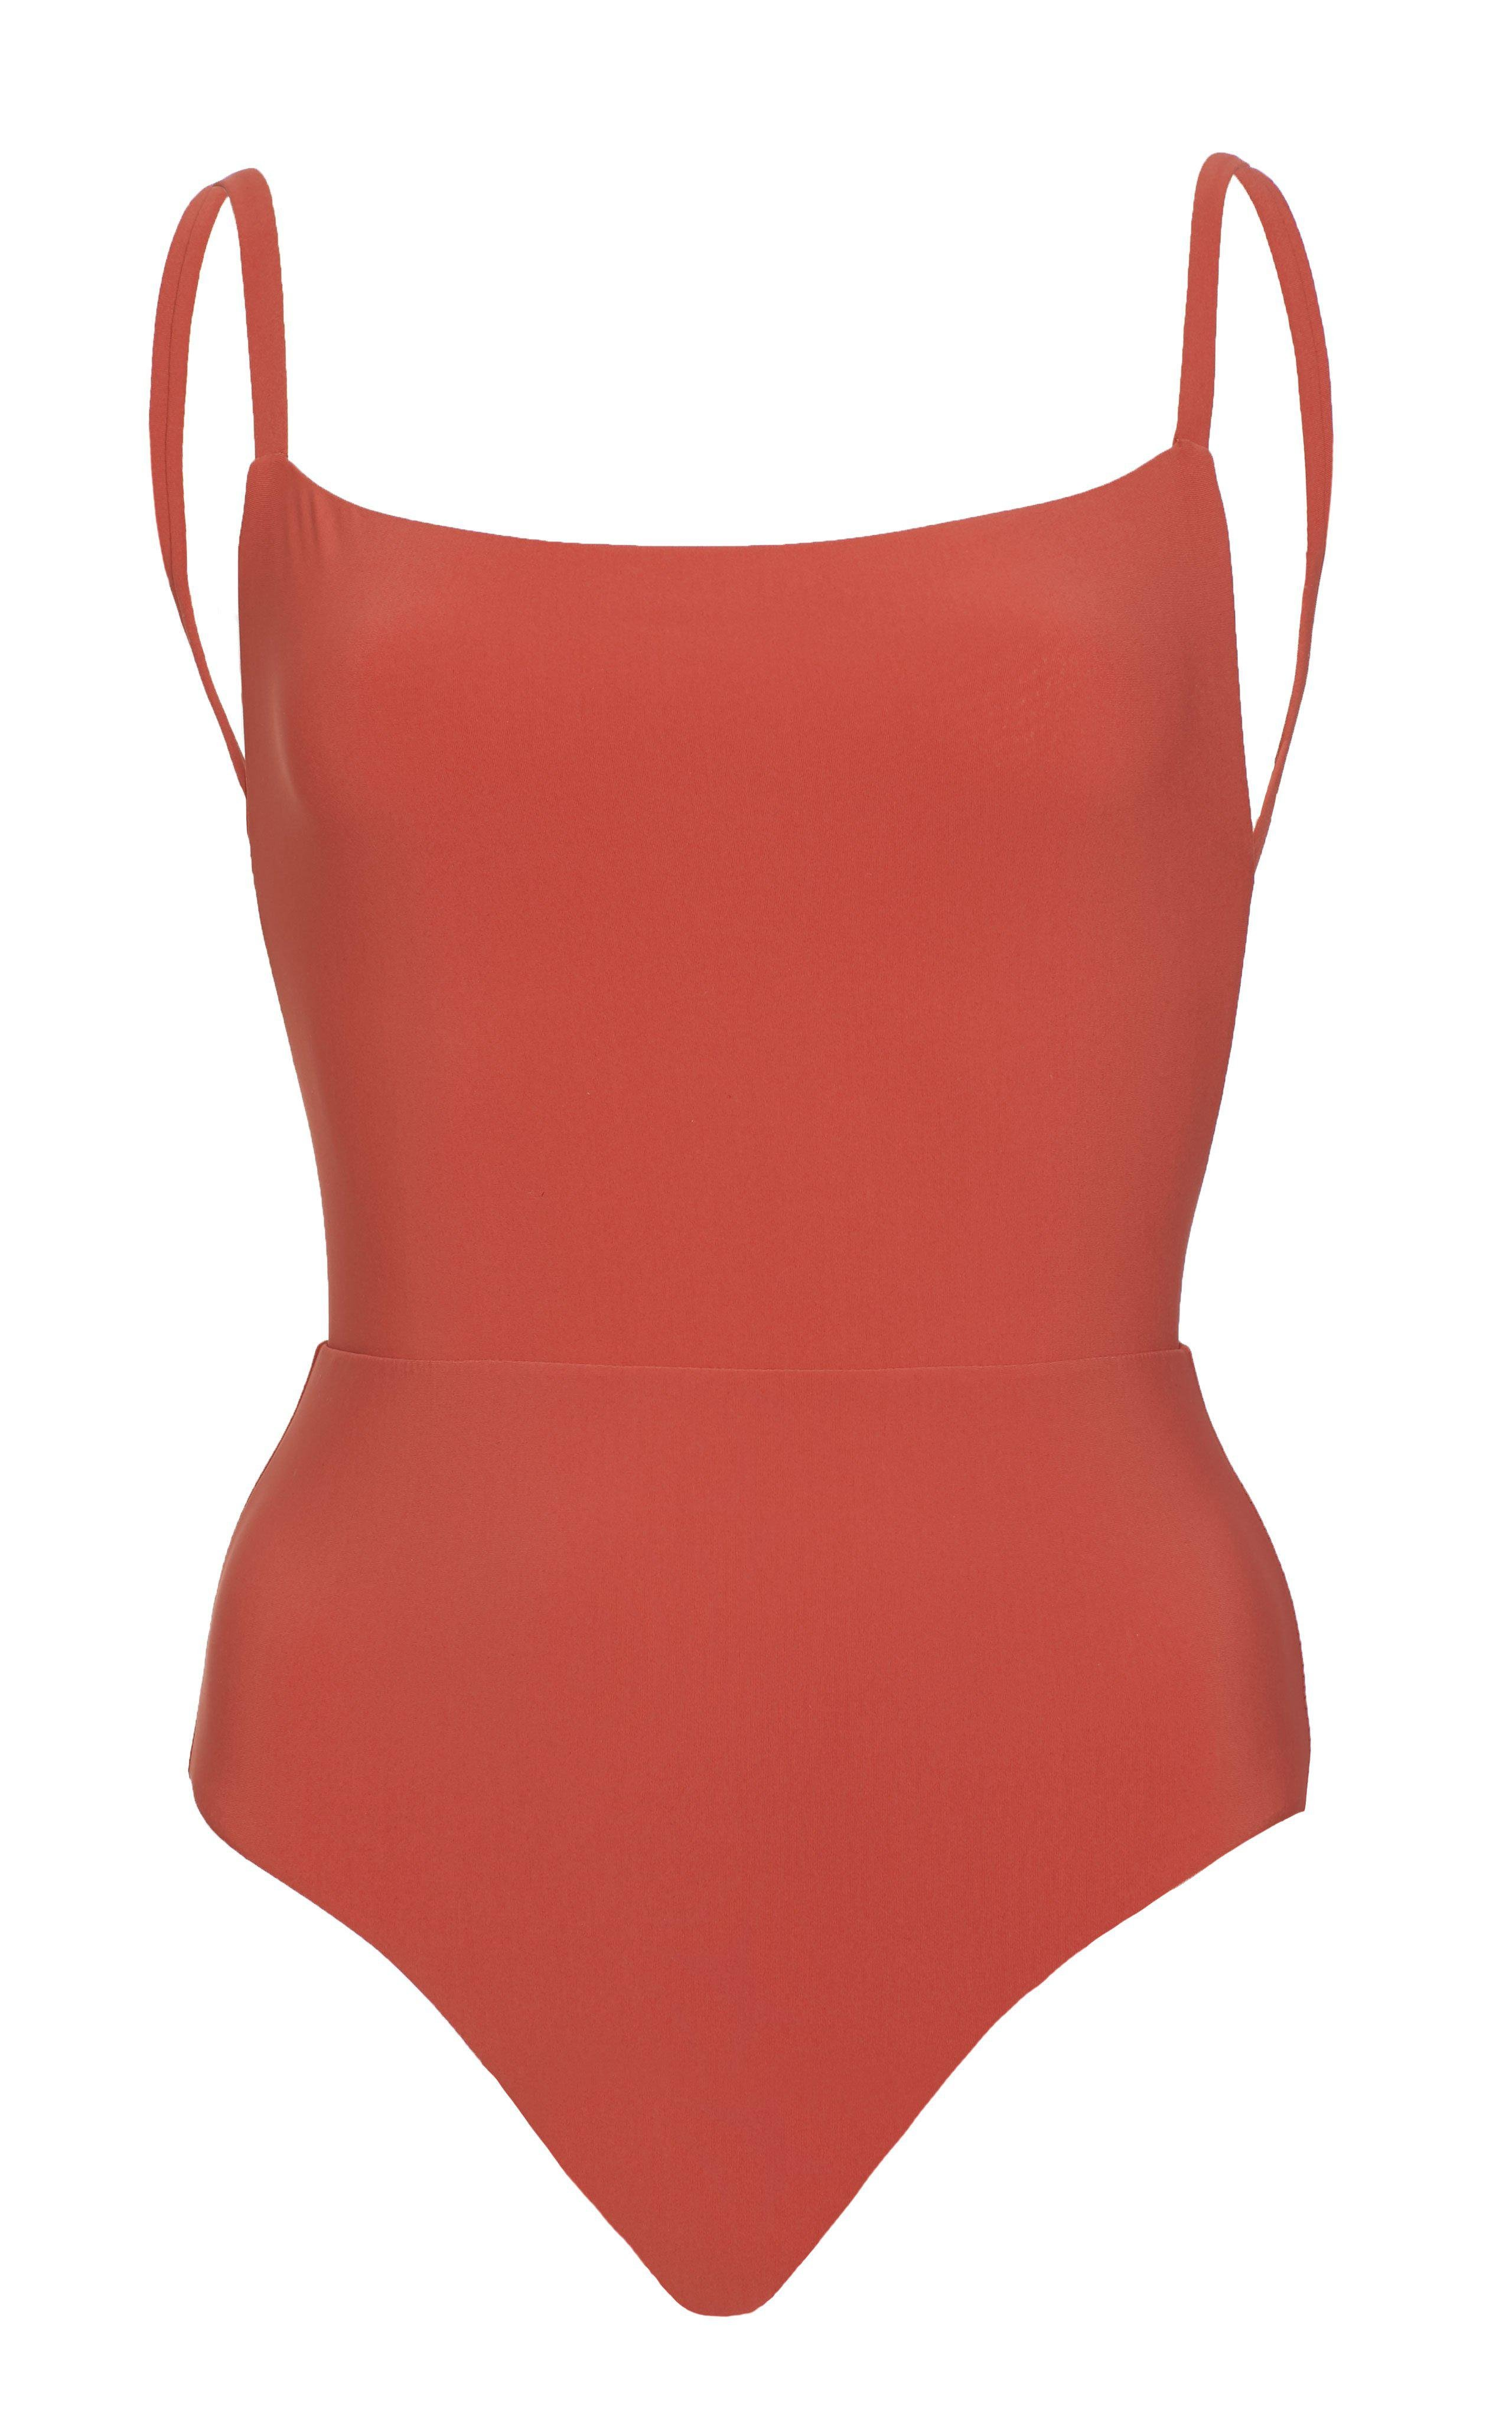 The Square Neck One Piece